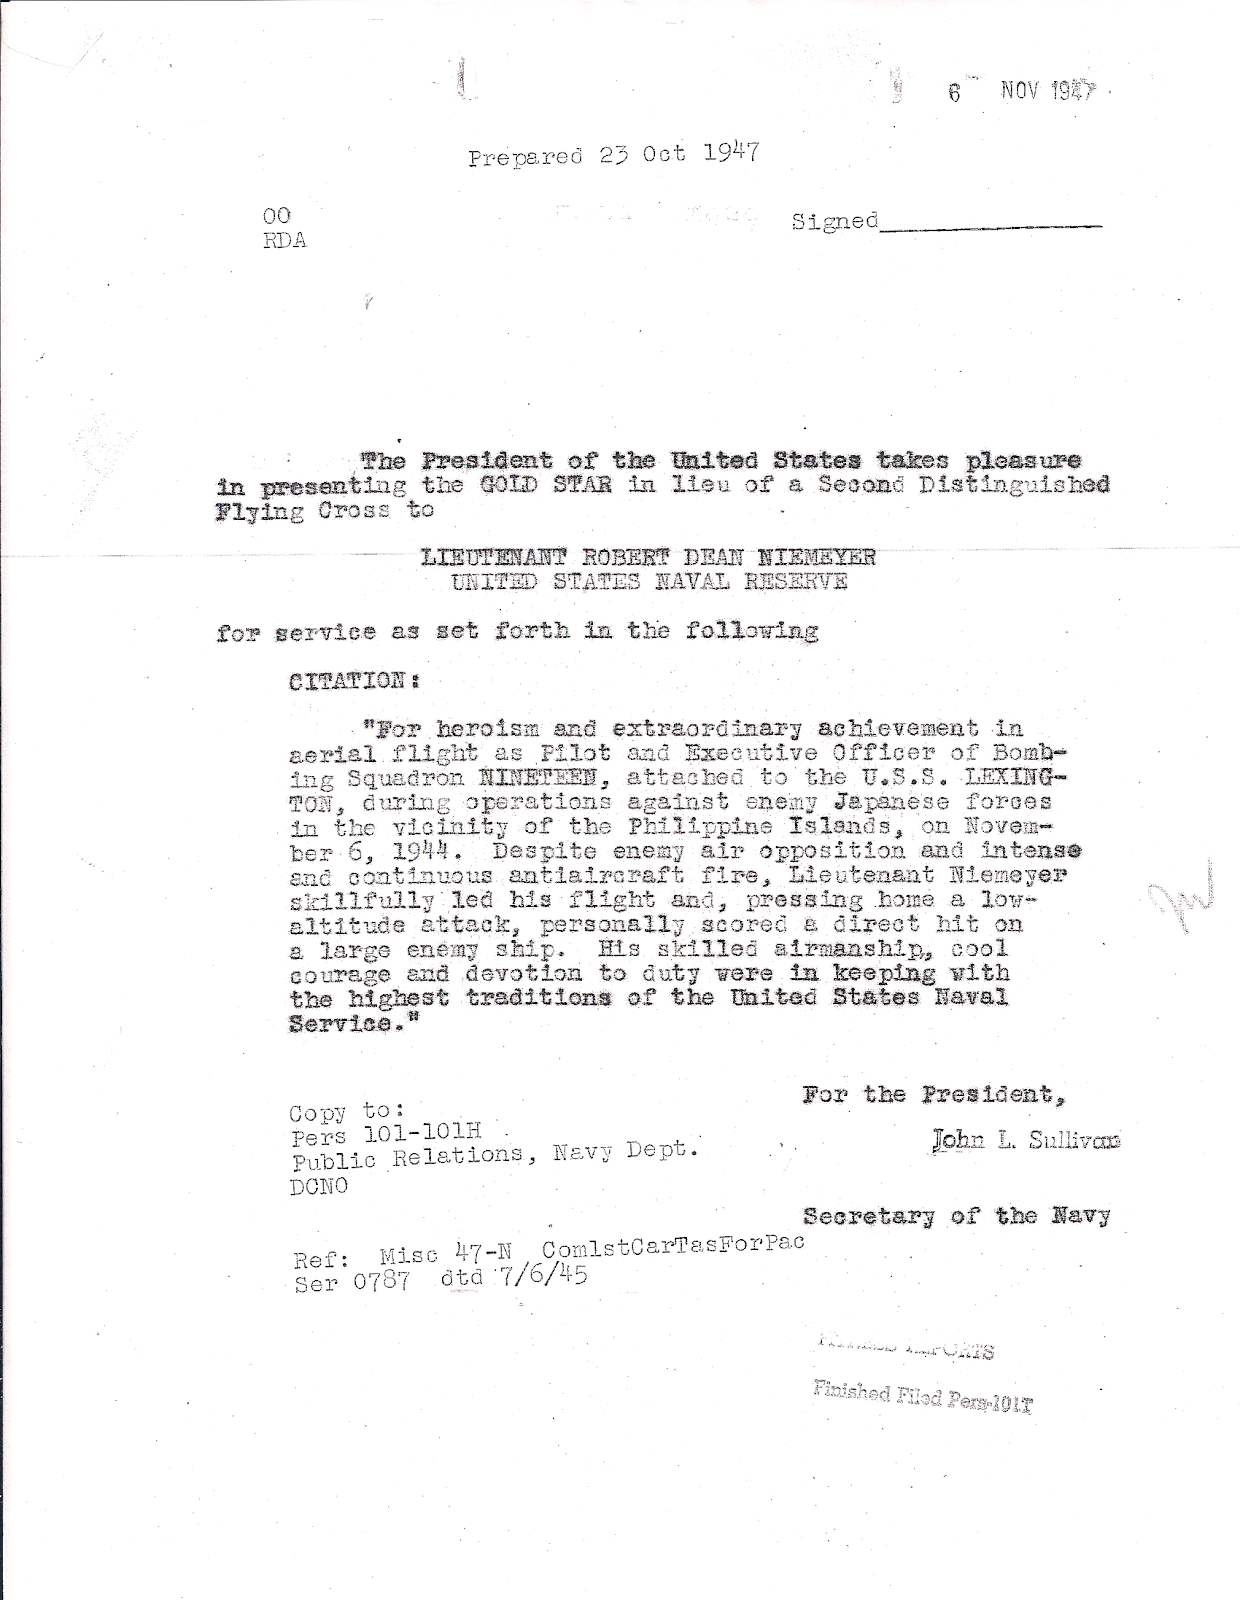 Robert D Niemeyer Presidential Citation for DFC Gold Star 23 Oct 1947.png